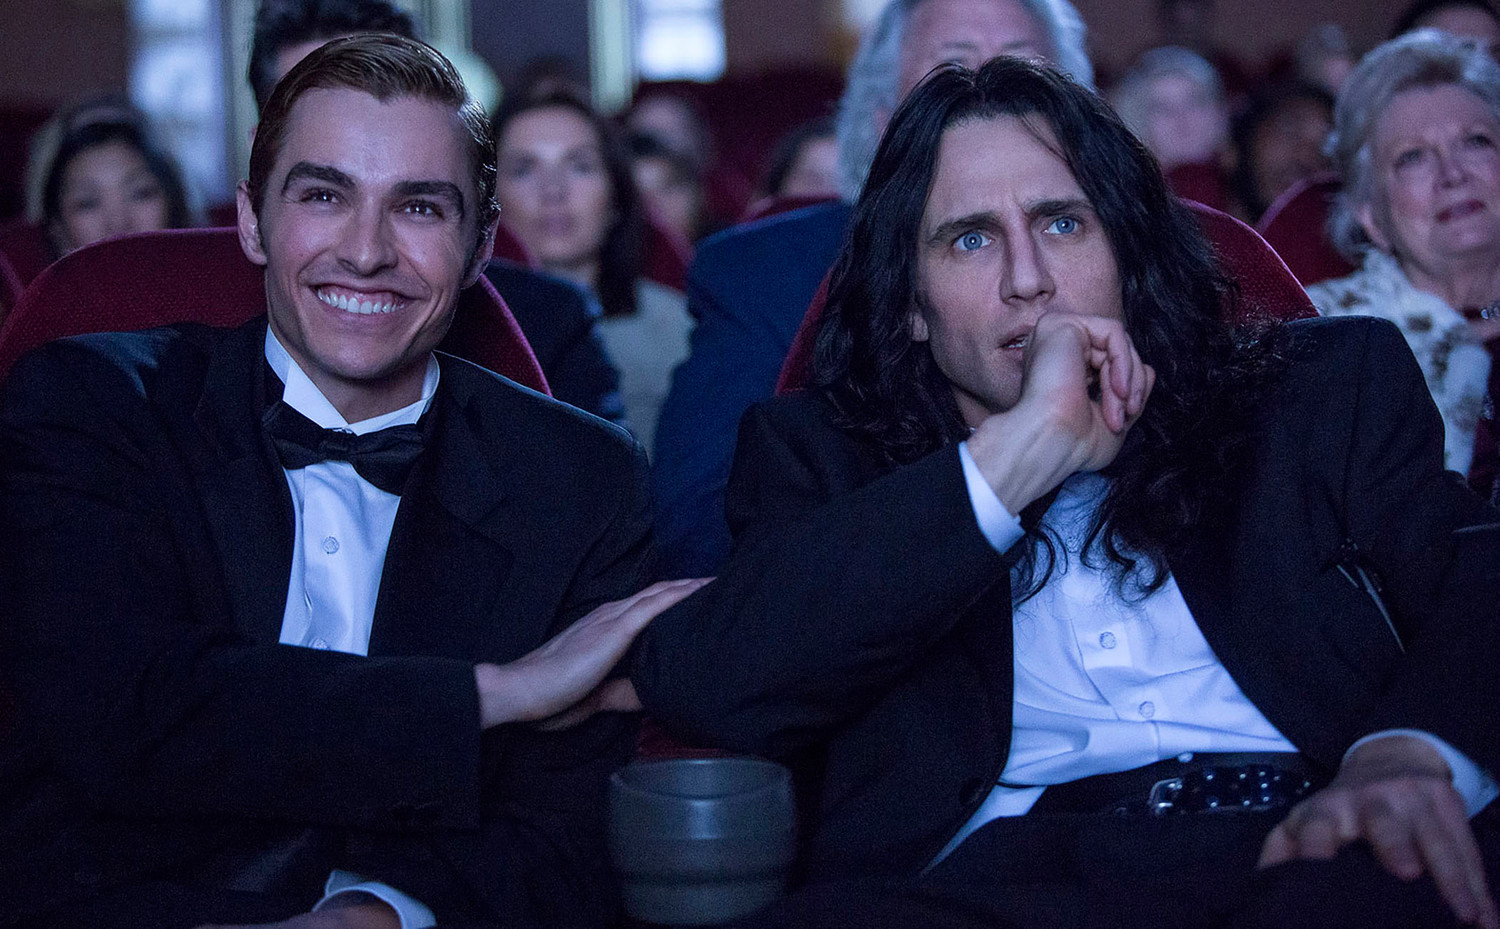 When Greg Sestero, an aspiring film actor, meets the weird and mysterious Tommy Wiseau in an acting class, they form a unique friendship and travel to Hollywood to make their dreams come true.